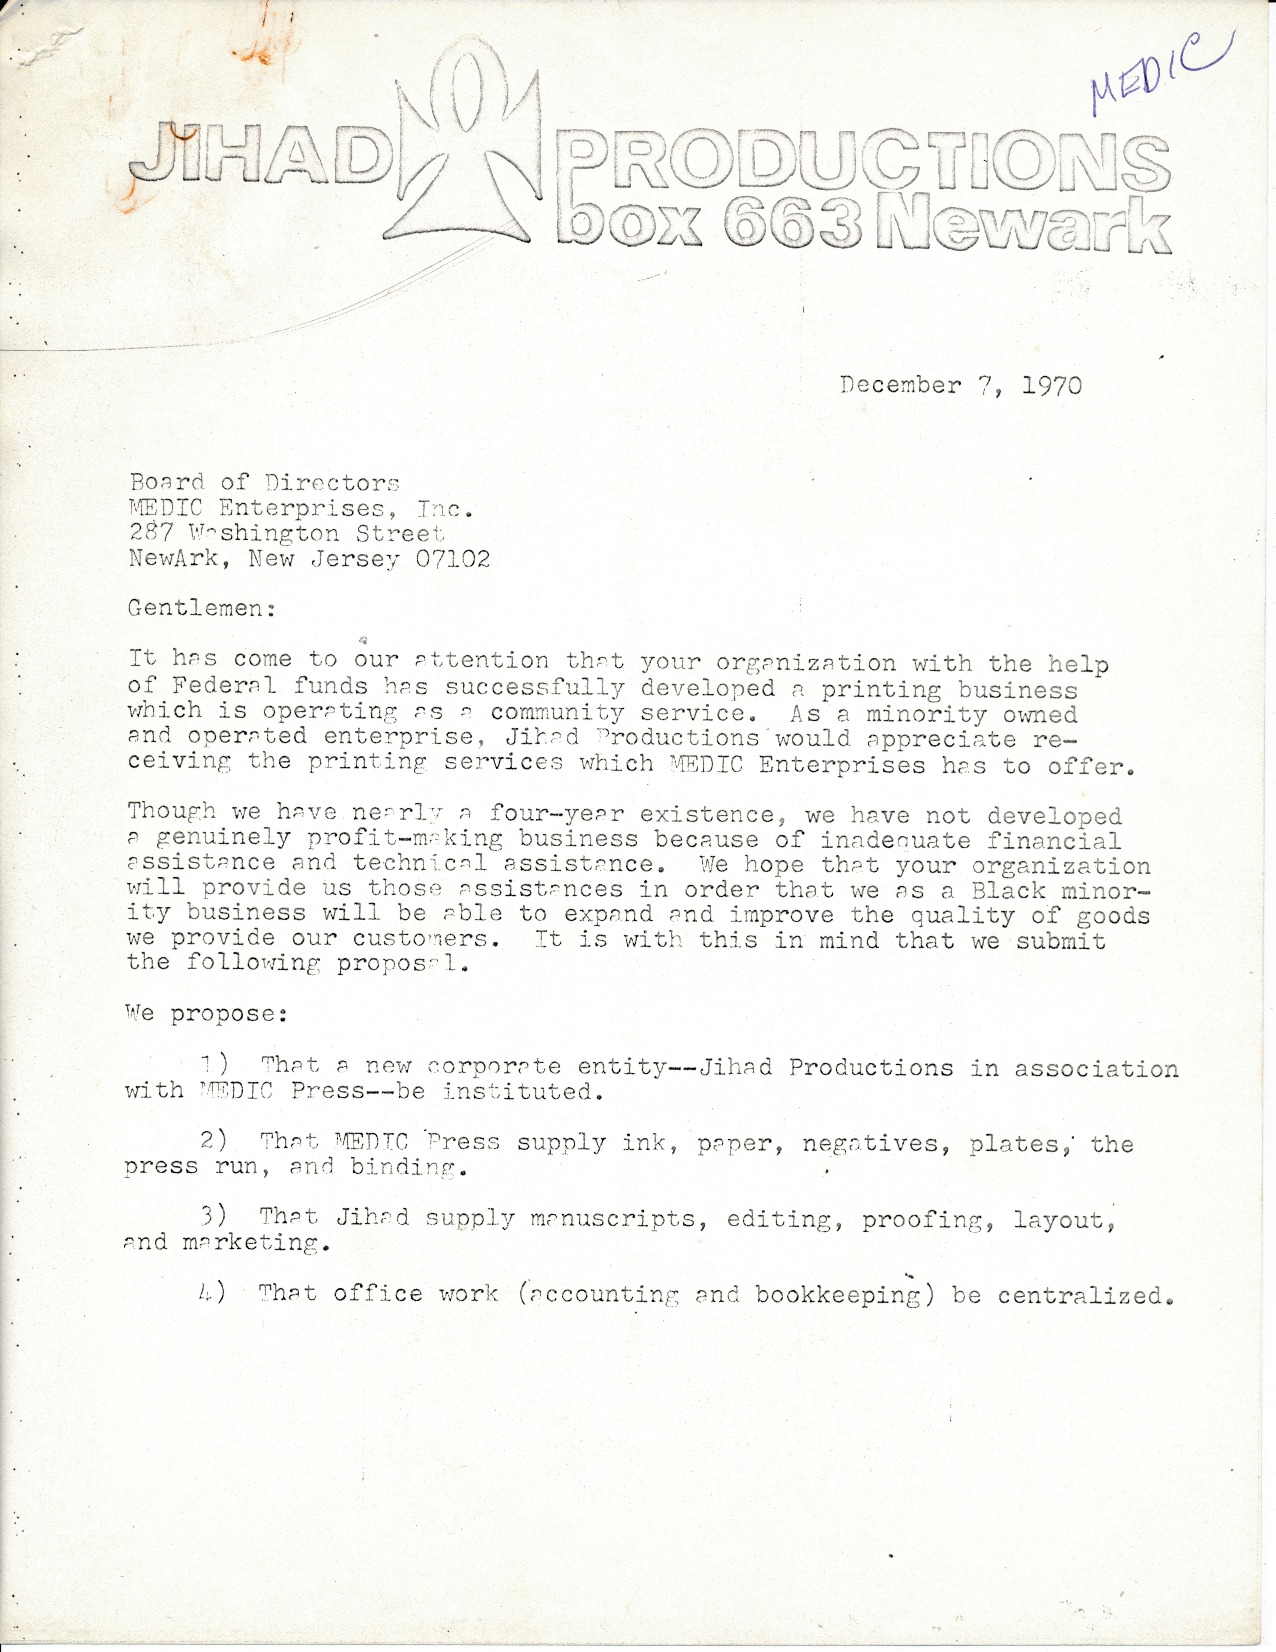 Letter from Jihad Productions to MEDIC Press (1970)